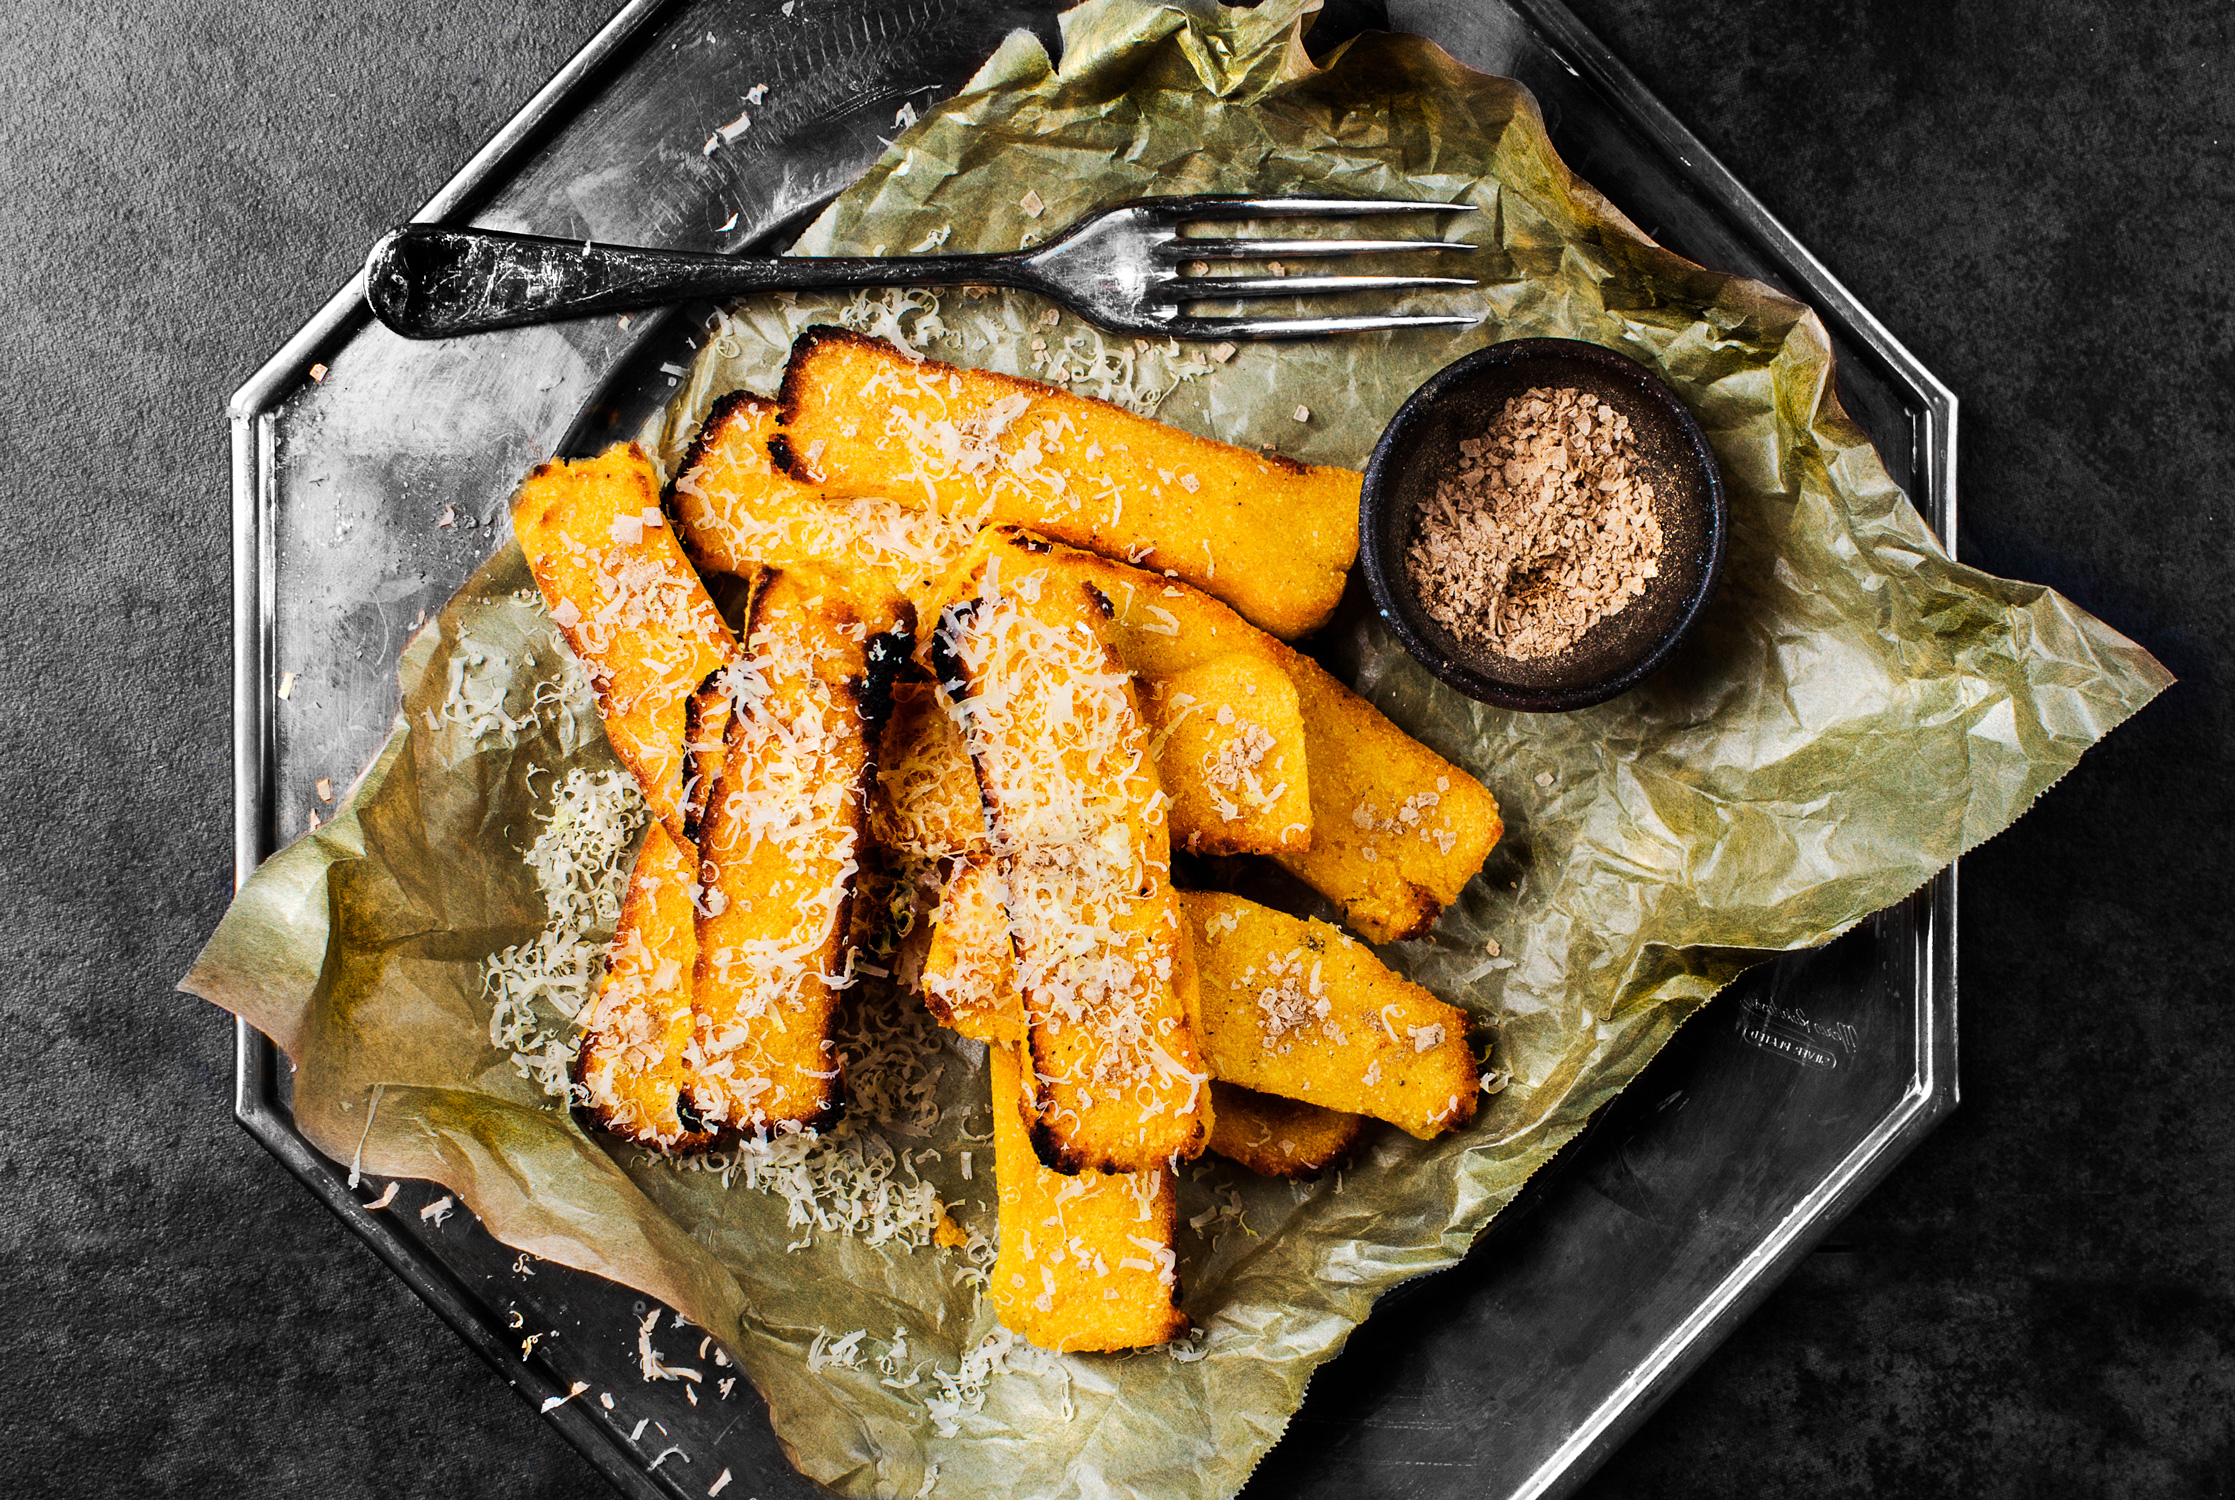 Polenta Buckwheat Chips w Porcini Salt.   Recipe and styling by   Cle-ann  , photo by   Hugh Adams  .